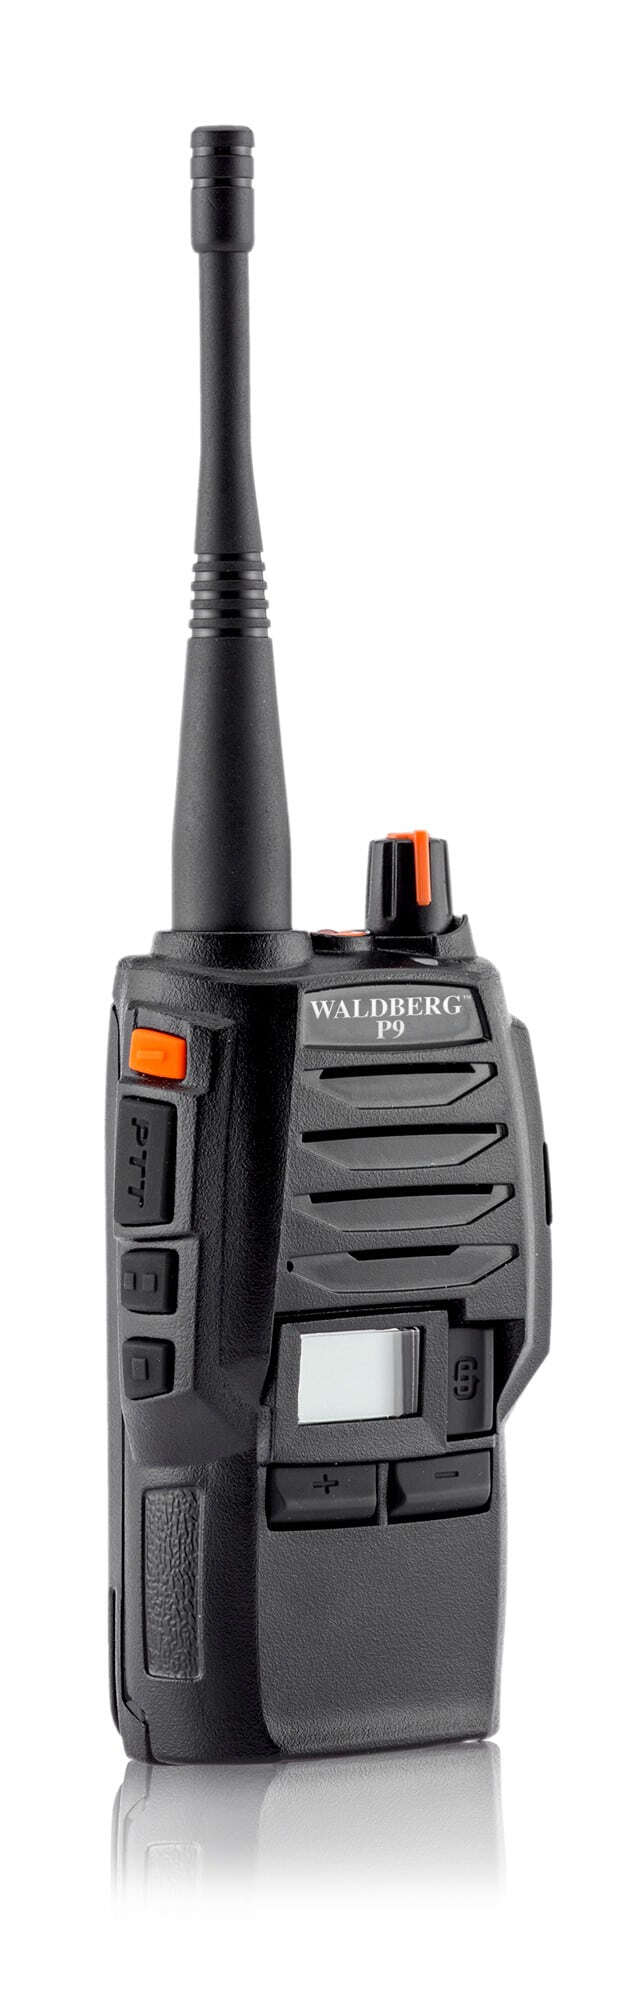 A69235 Talkie-Walkie Waldberg P9 PRO V2 - A69235